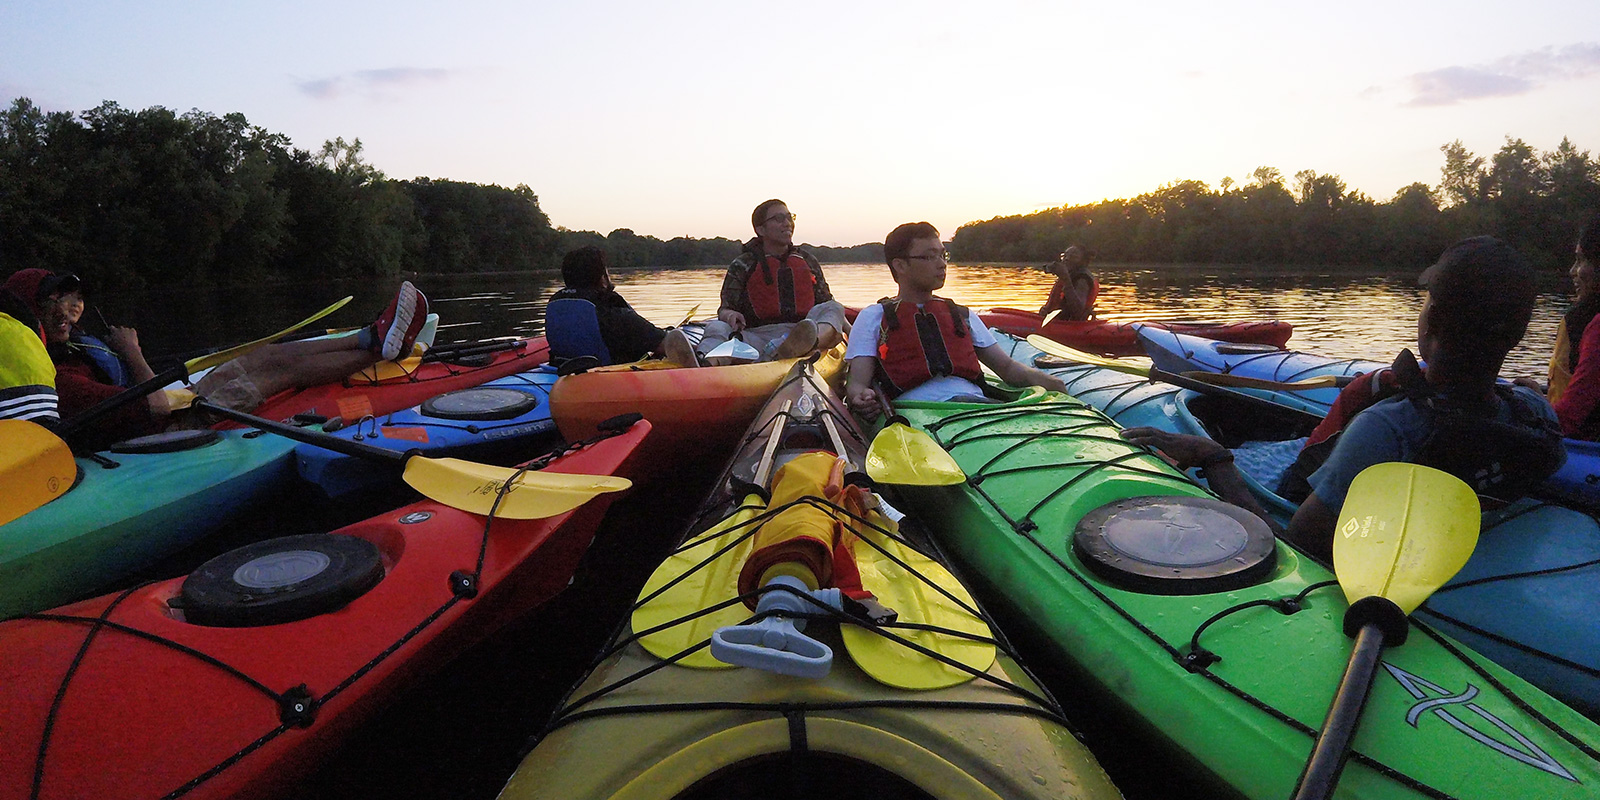 Kayakers Relax at Sunset. At the UMass Lowell Kayak Center you can rent kayaks, canoes, stand-up paddle boards or sign up for kayaking instructional programs, tours and events!